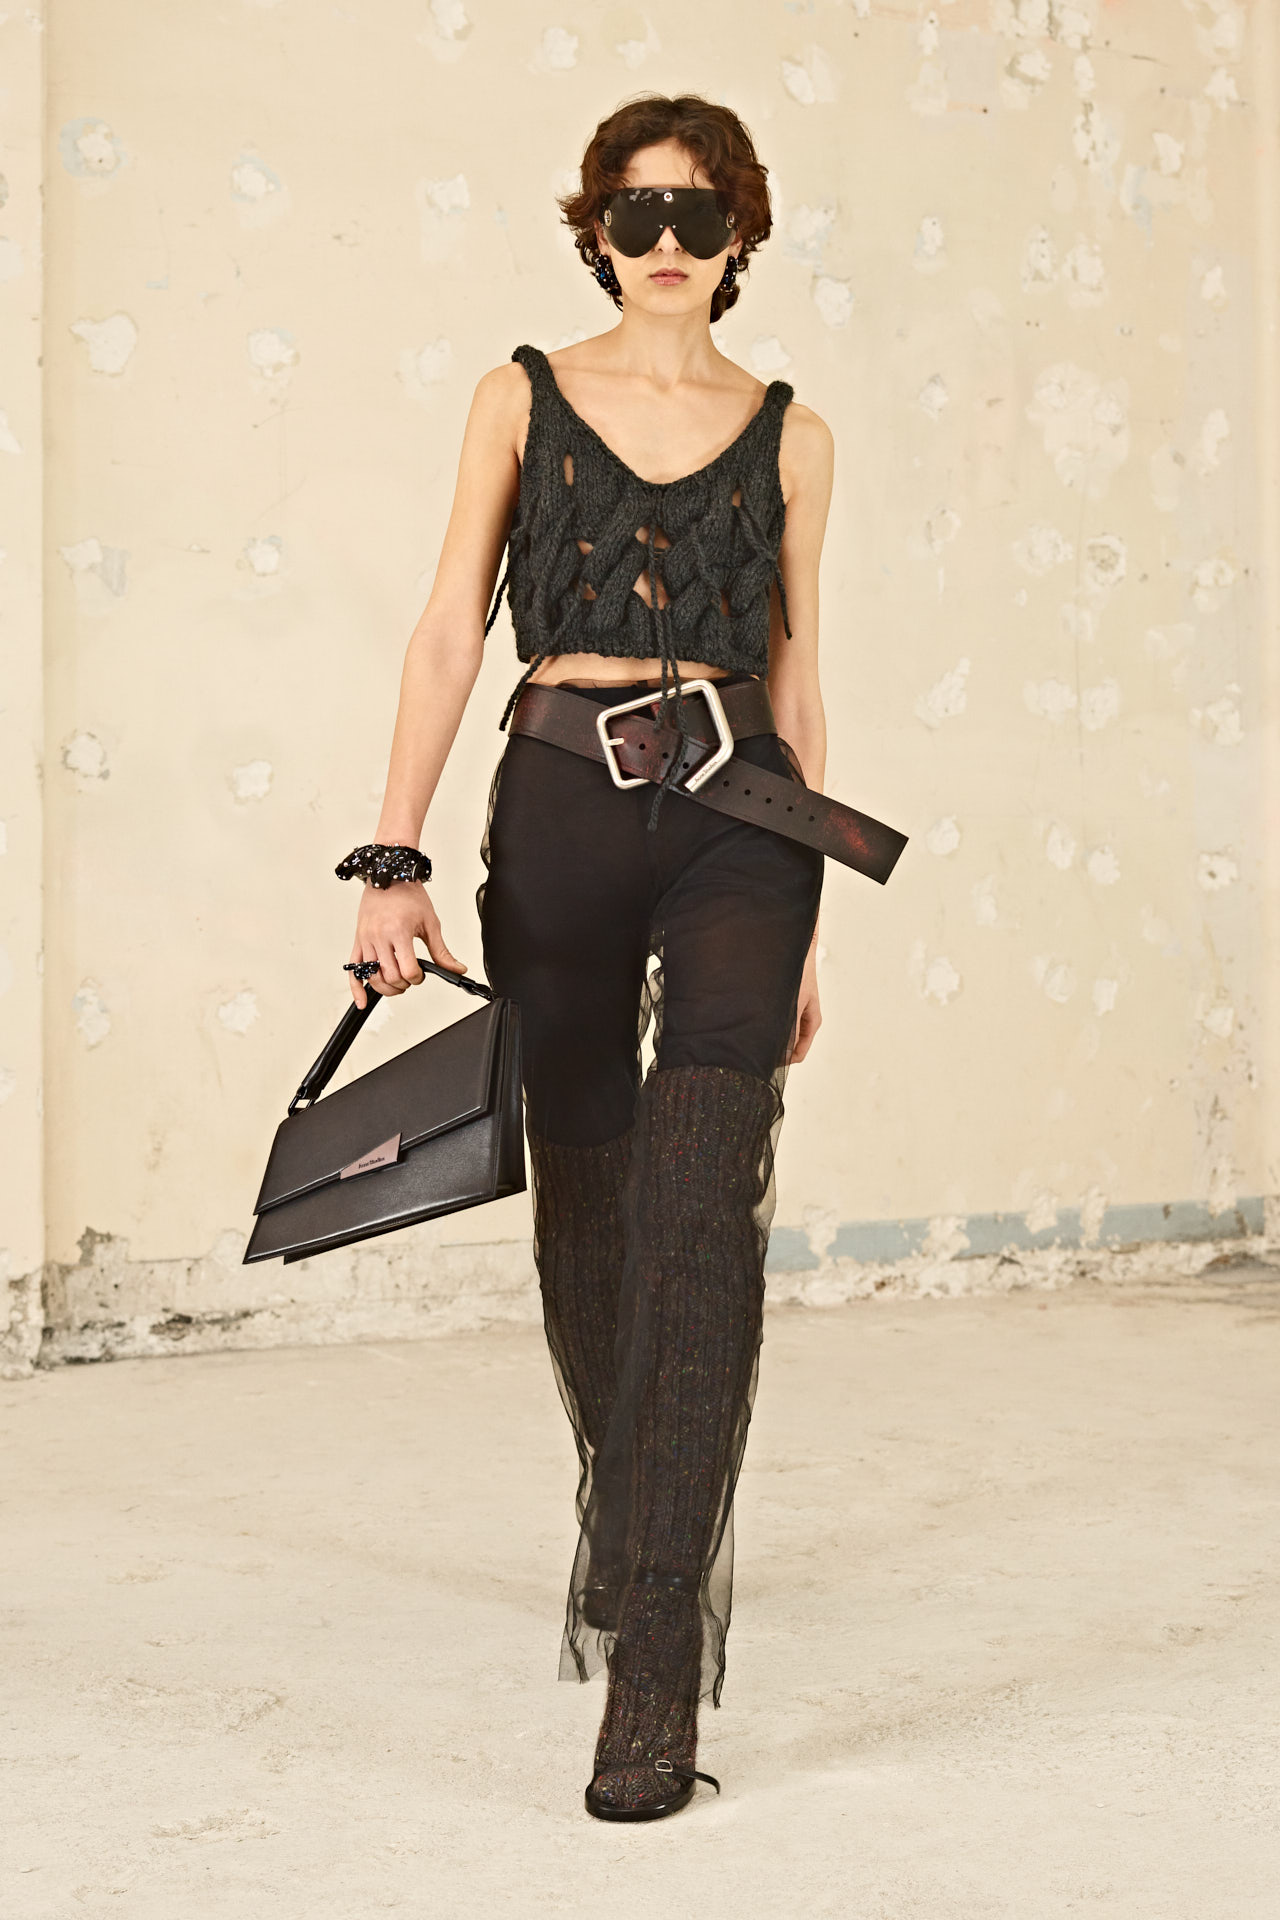 Look Fall/Winter 2021, image 28